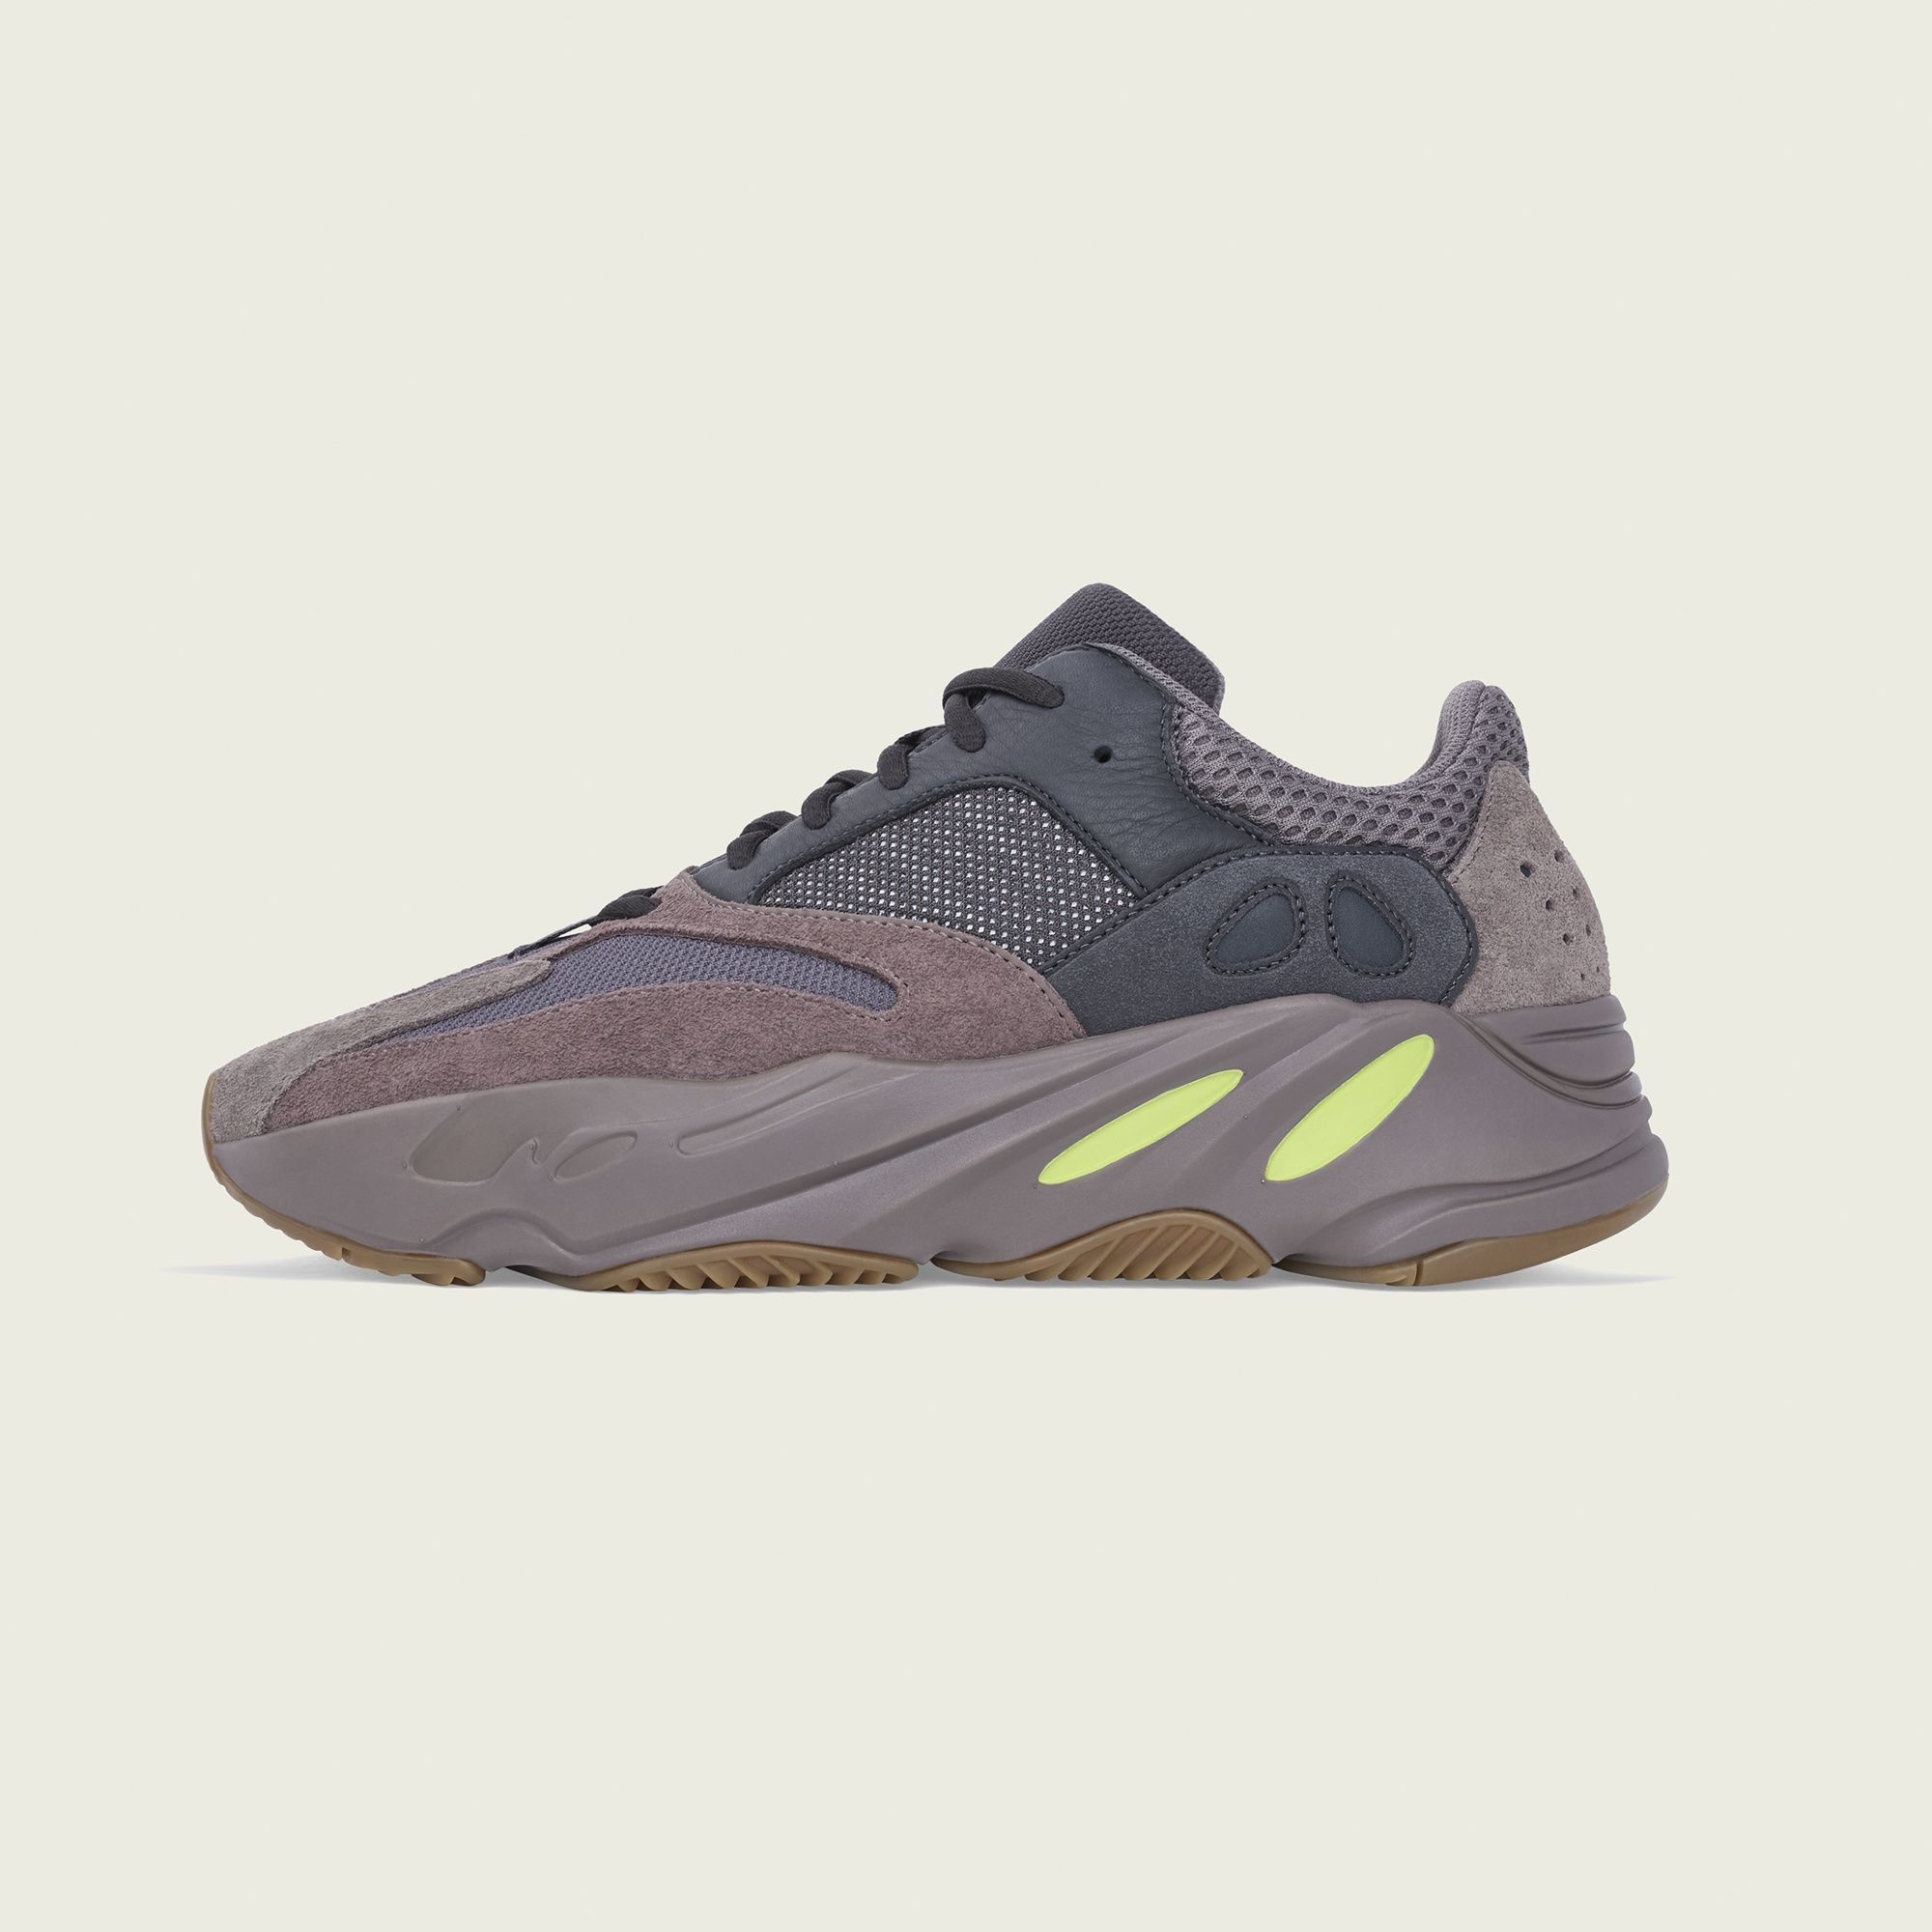 3bf533809 order nike kobe ad cool grey release details sneakernews 5975a f0ff9   cheapest adidas yeezy boost 700 mauve10 27 2018 9c60b d8ad7